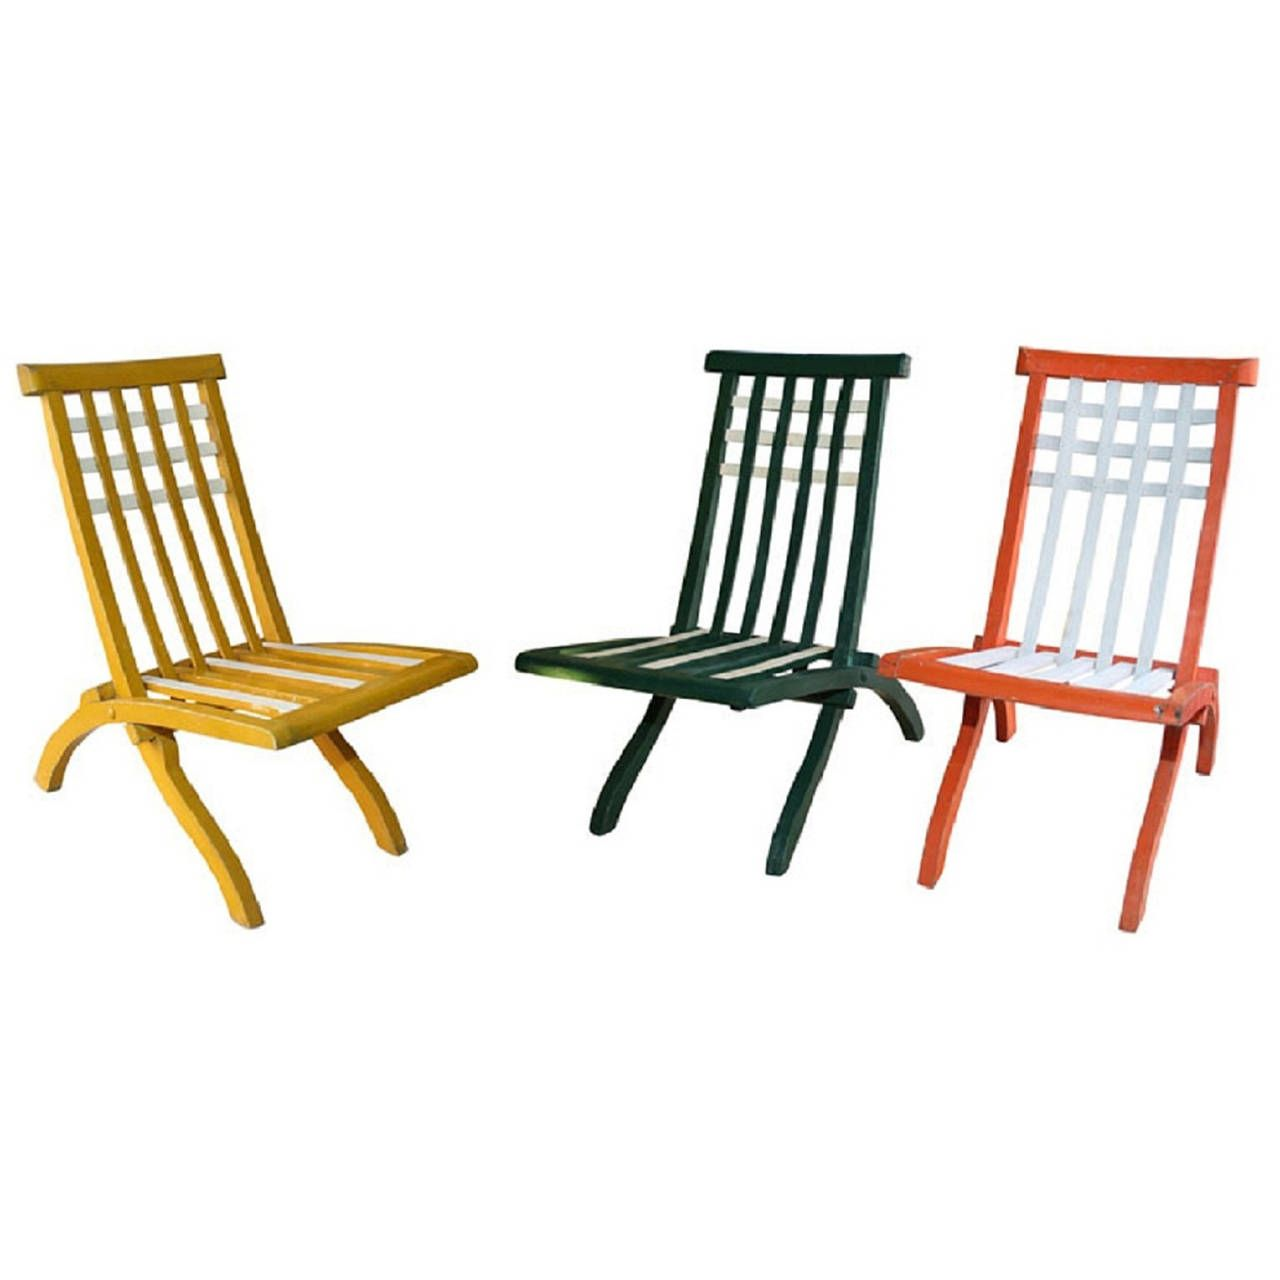 Garden Furniture France set of wooden folding chairsmallet-stevens, french 1920s